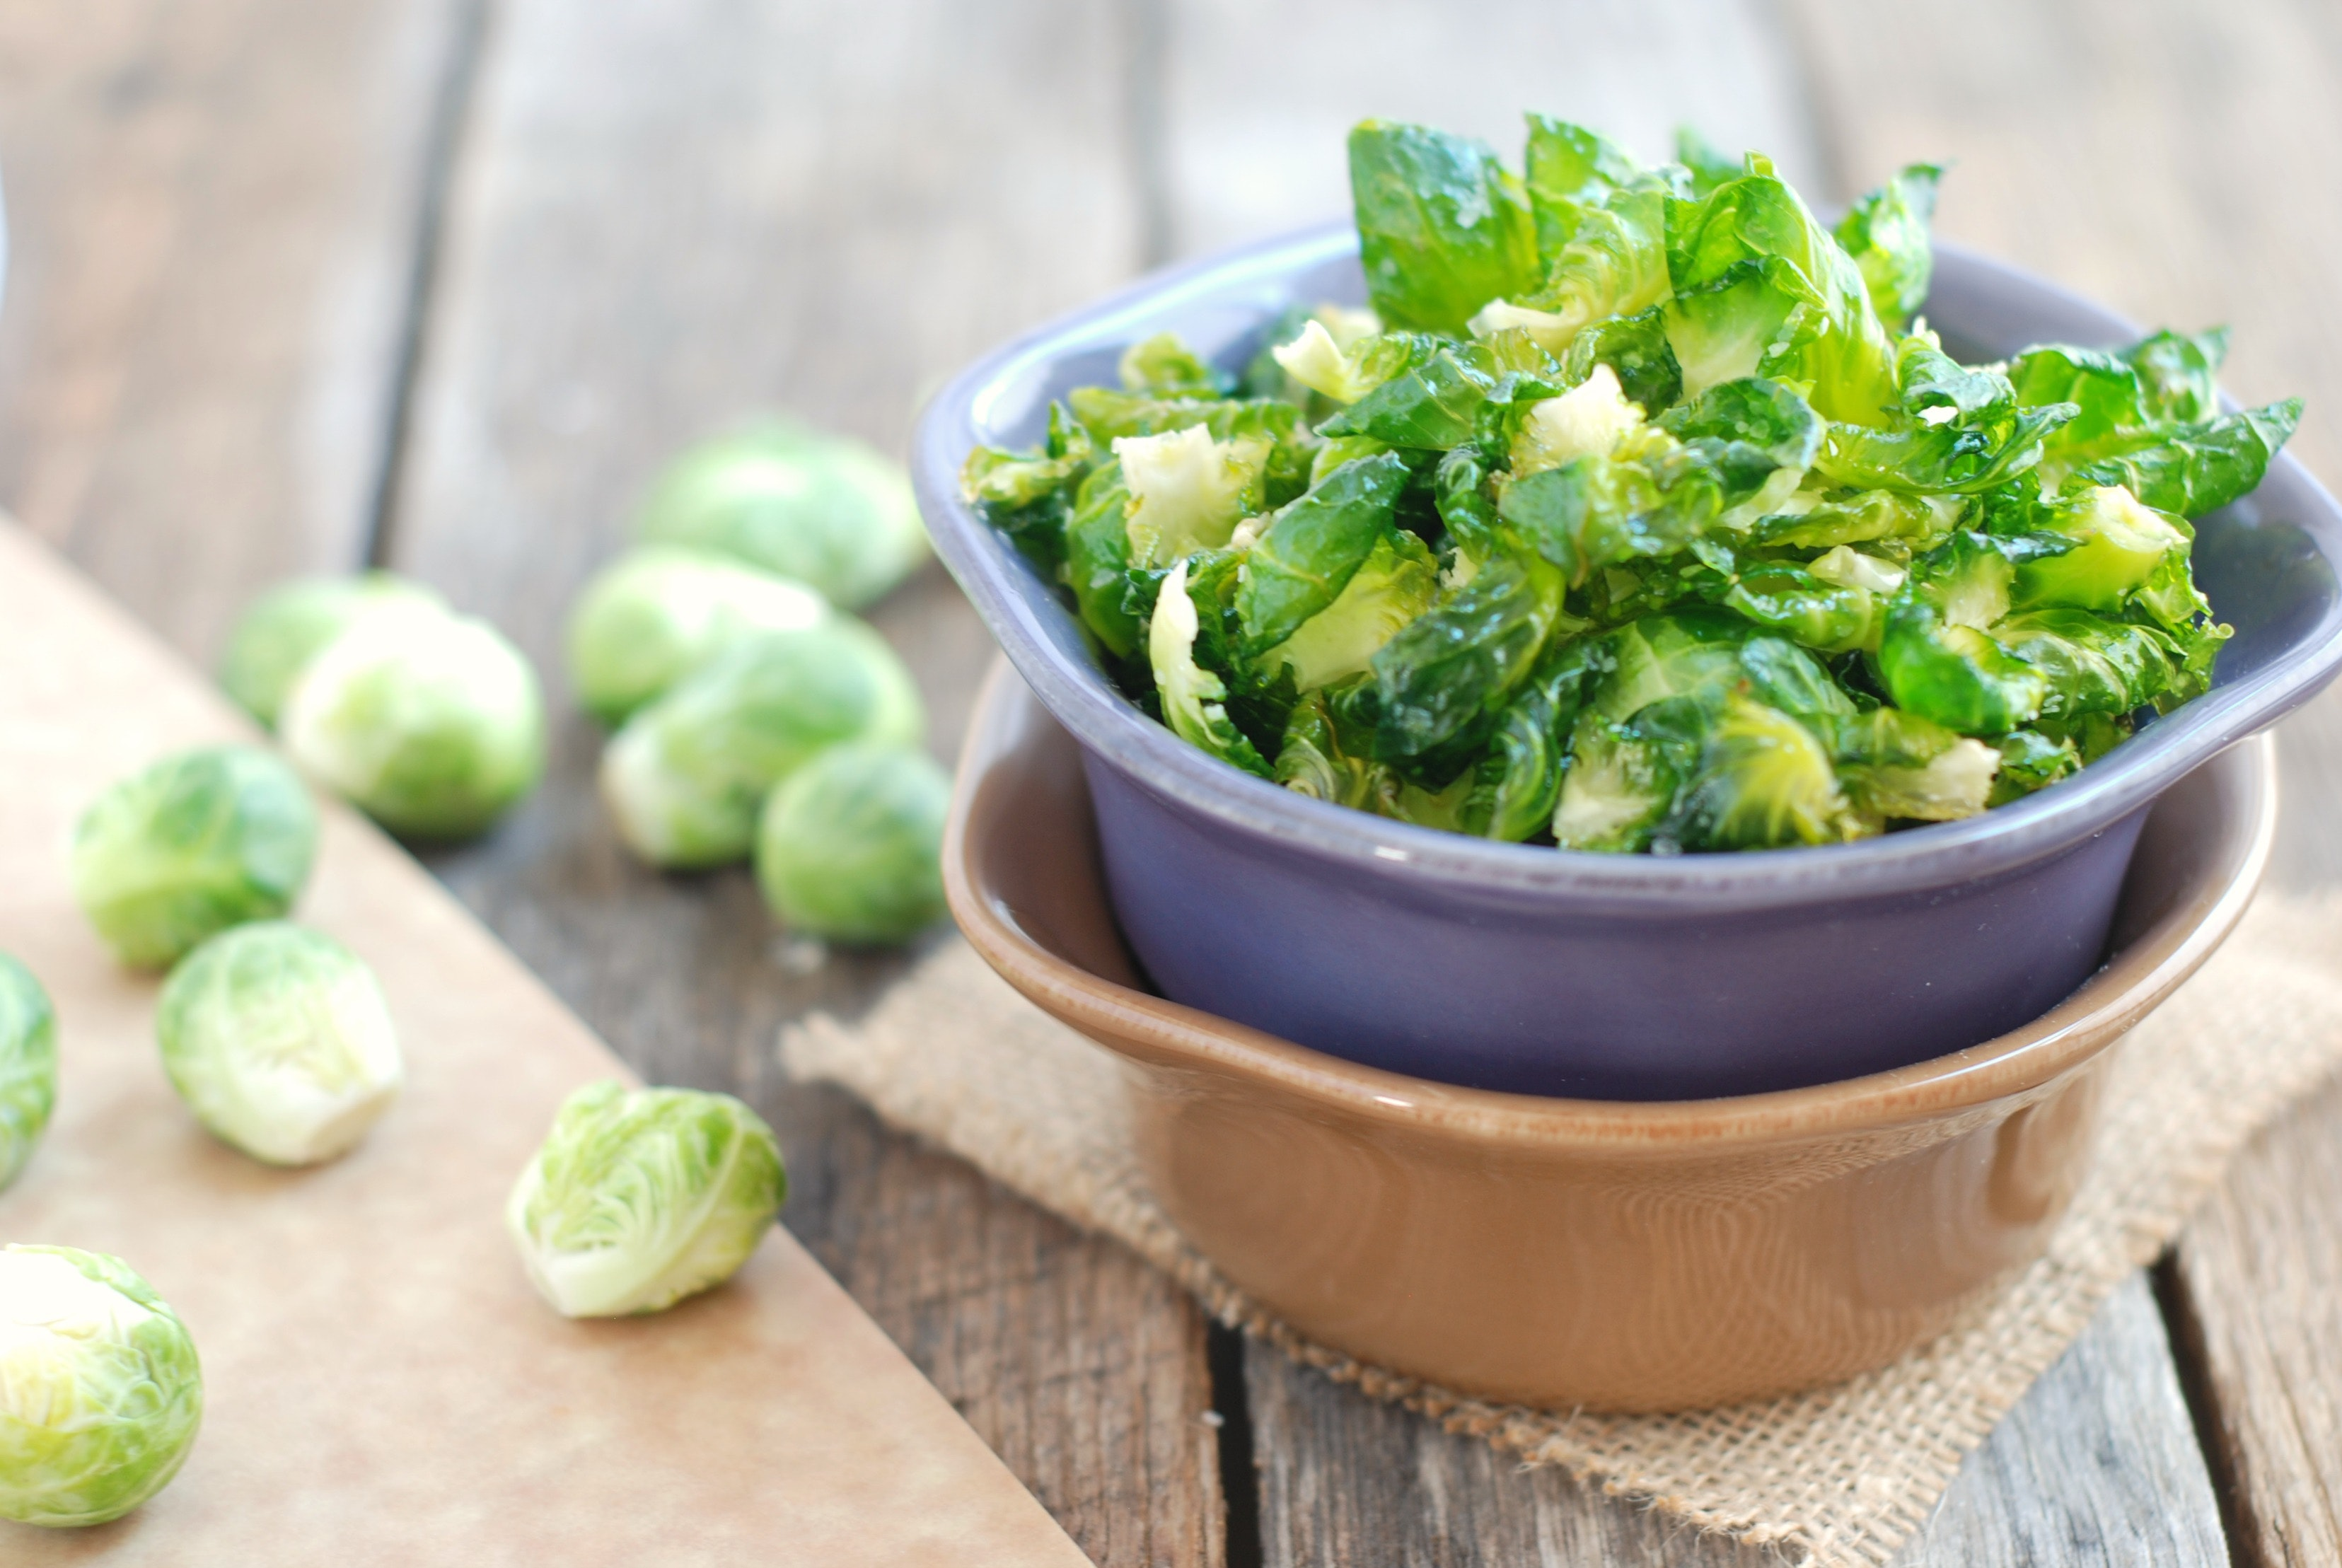 How to Make Brussels Sprouts Chips